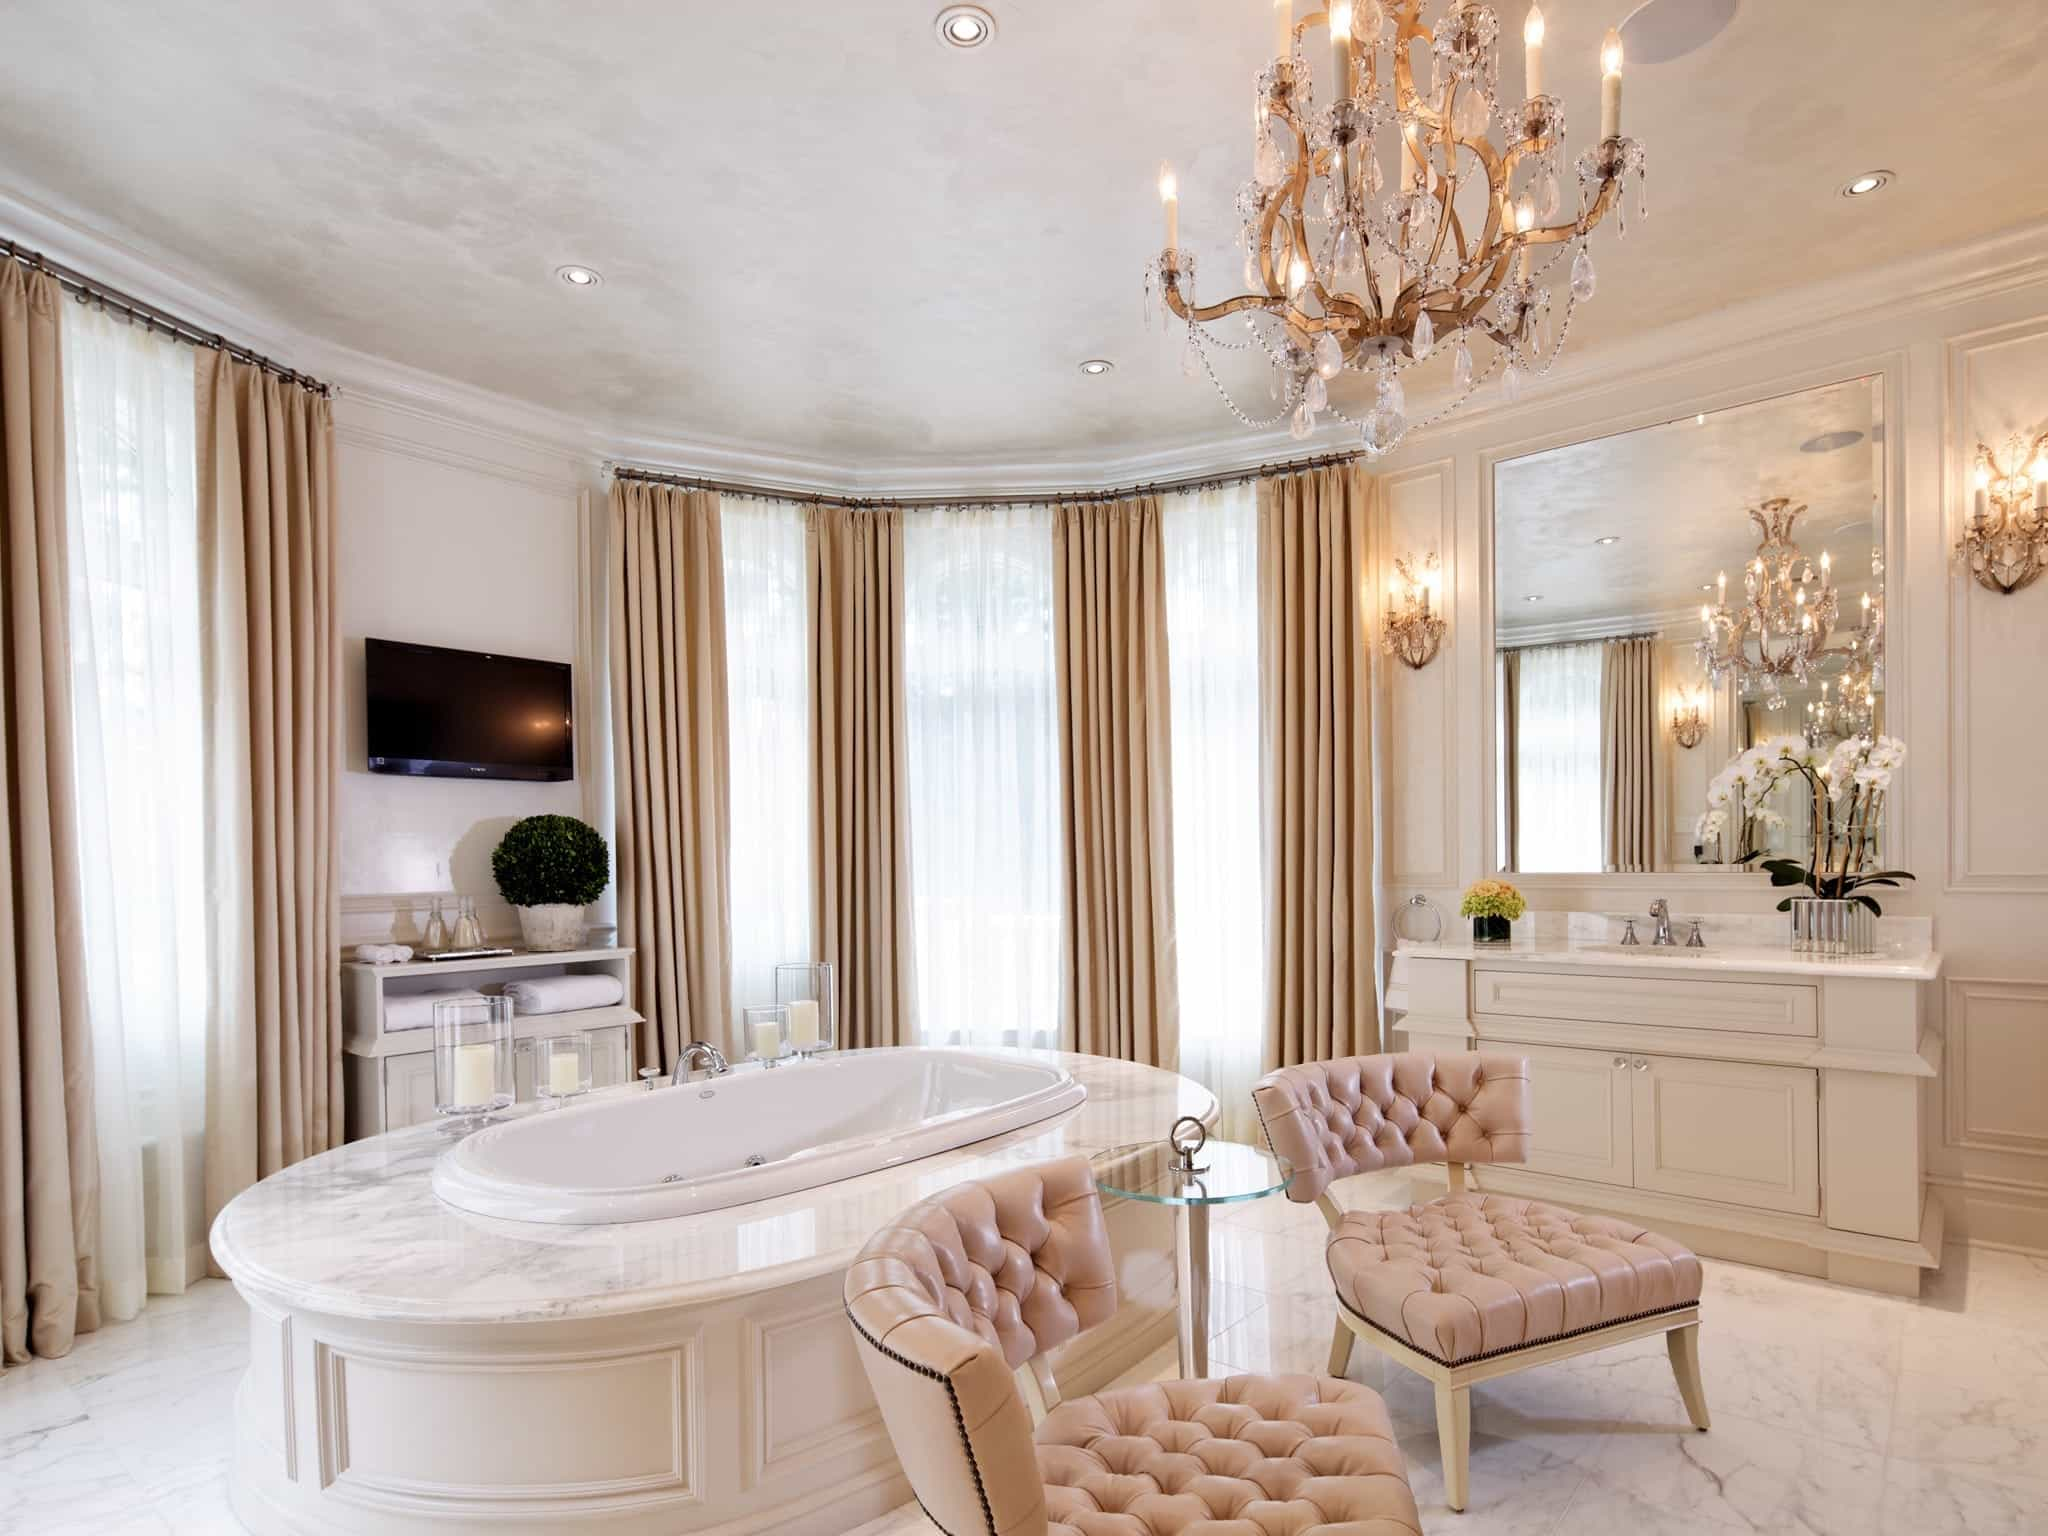 Deluxe Elegant Master Bathroom With Marble Floors (View 13 of 13)